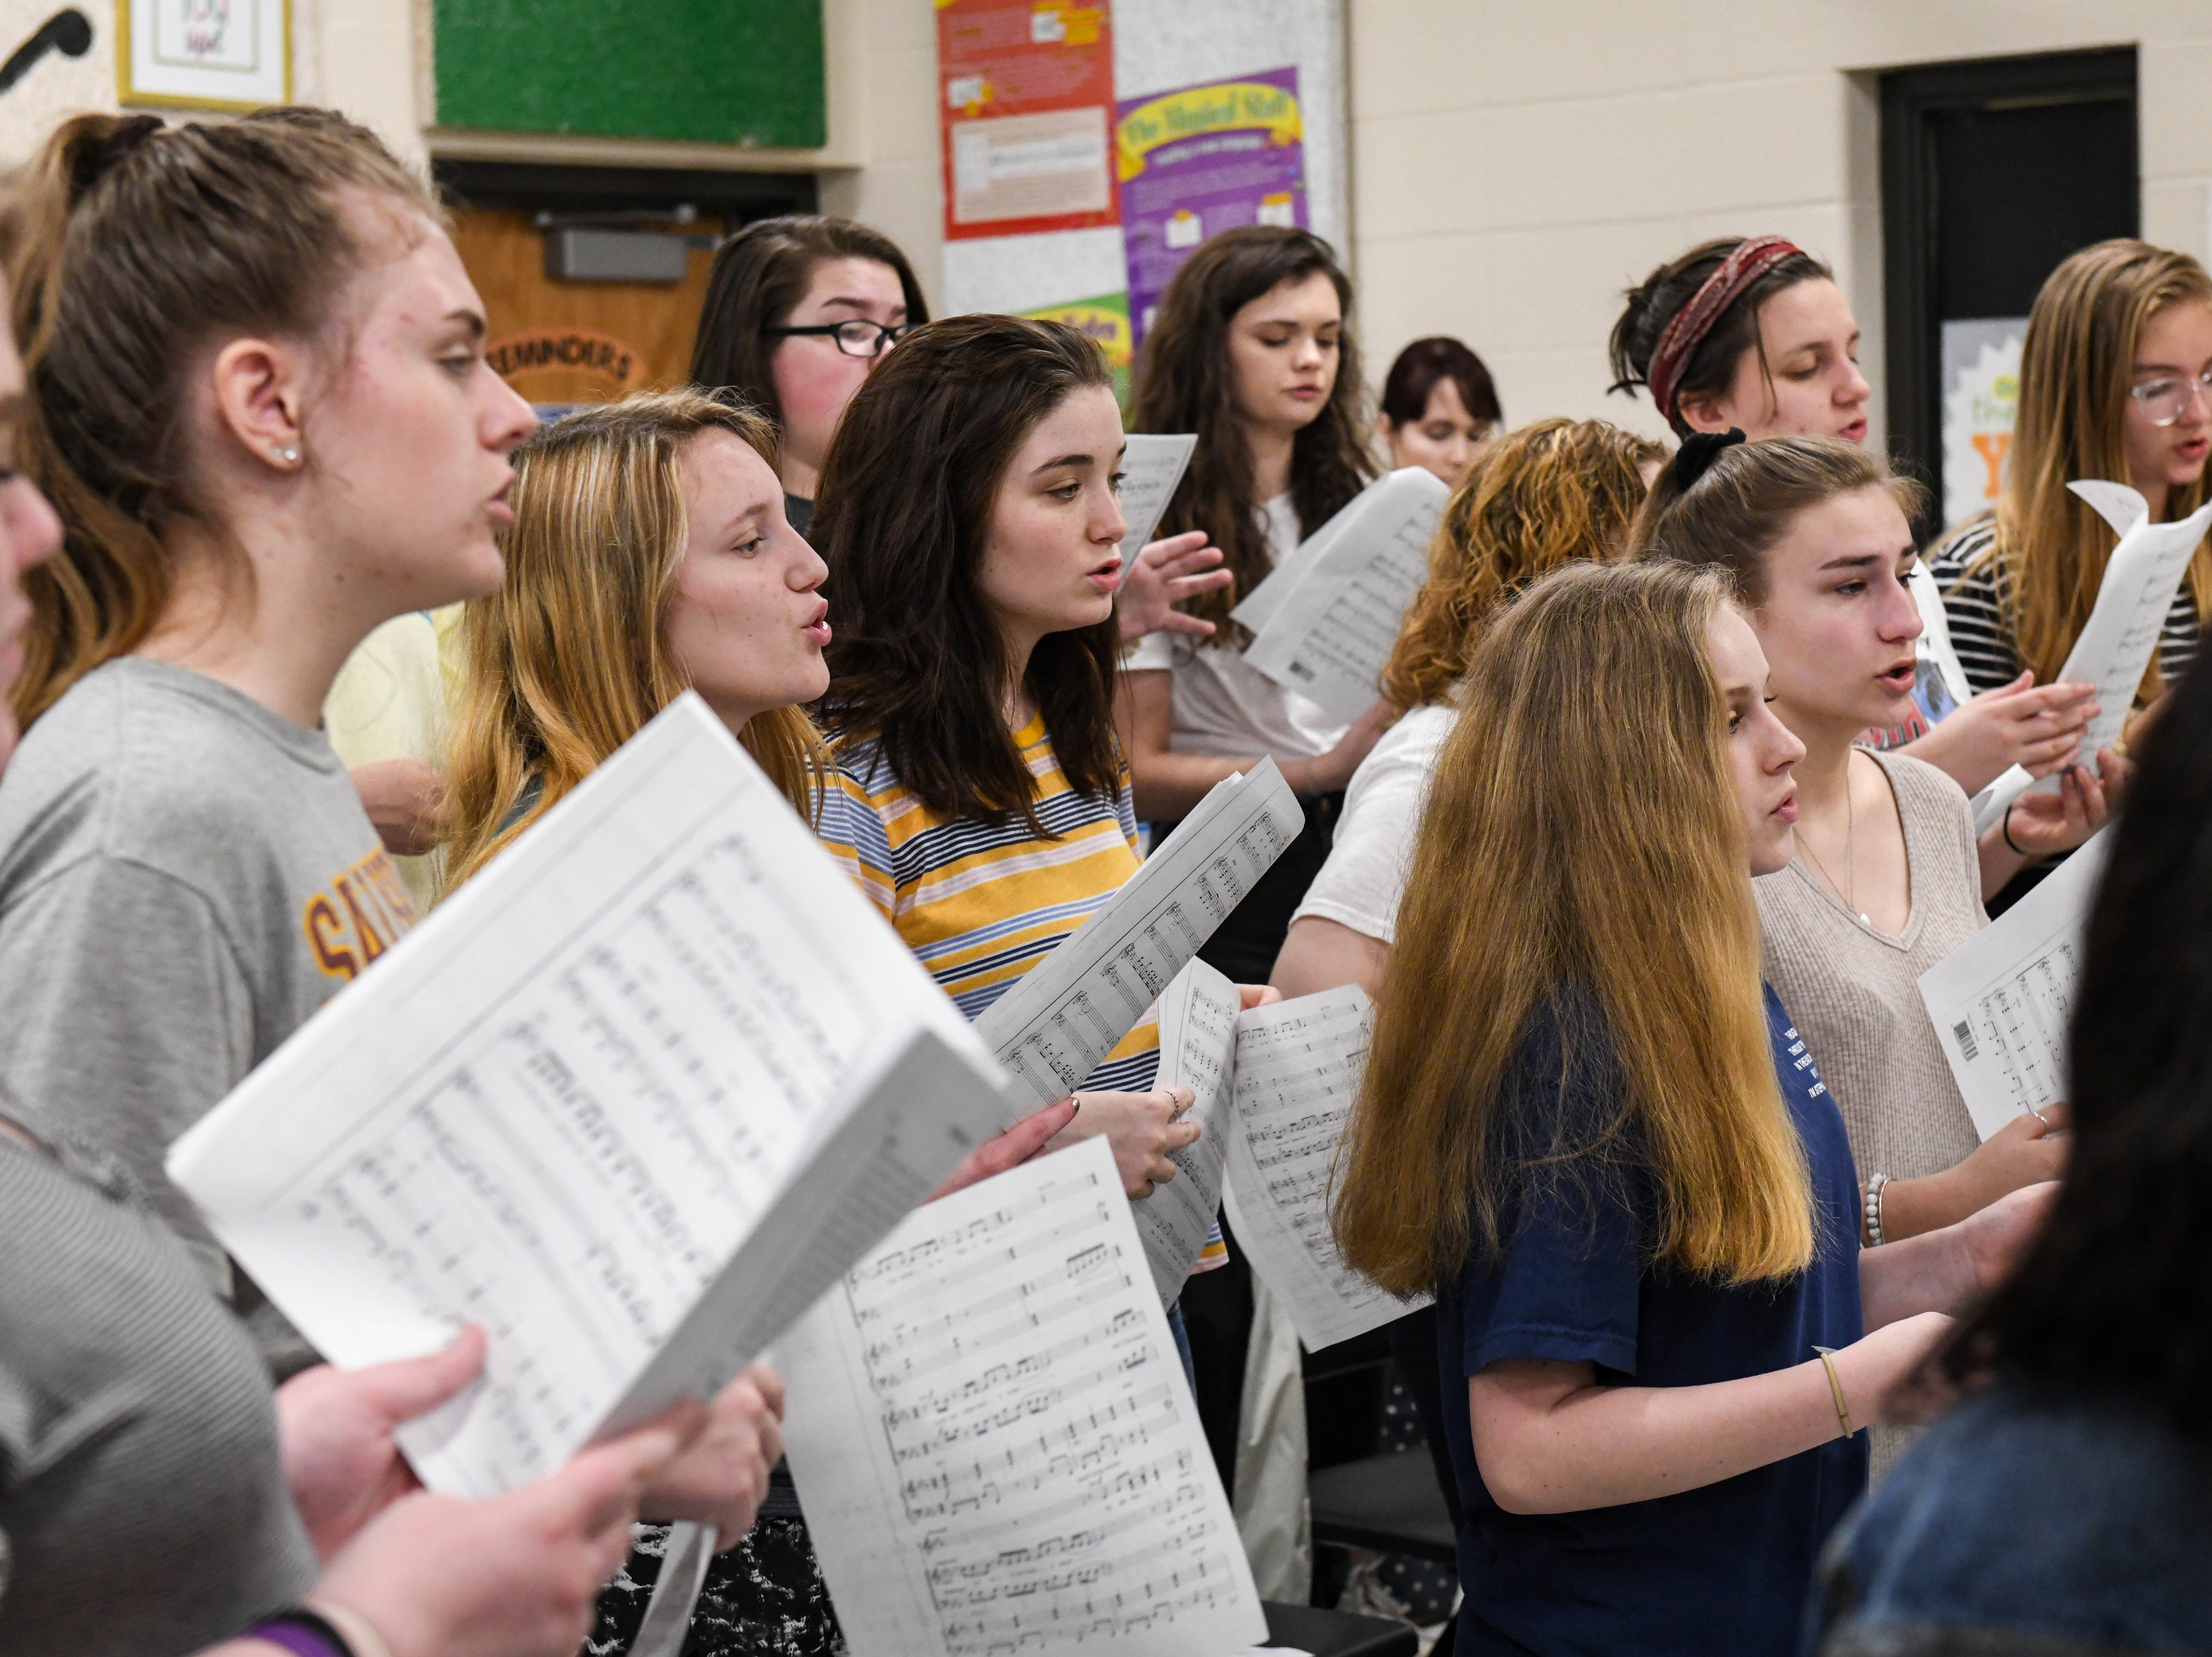 Students practice in choir at Parkside High School in Salisbury on Tuesday, April 9, 2019. Public schools in Wicomico and Worcester were named among the best communities for music.